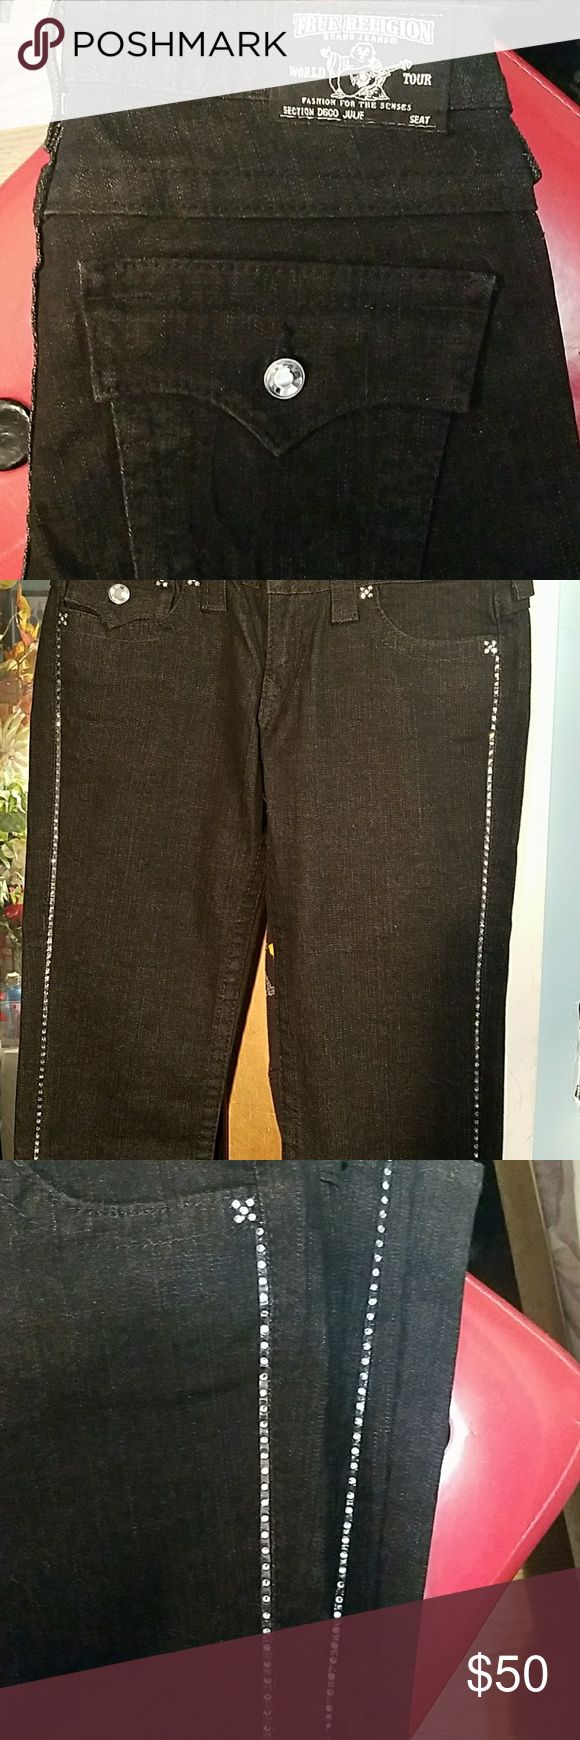 True Religion women's jeans These are black skinny. Stretchy and have diamond like jewels that go all the way down each pant leg. Very cute. Almost new. No damage. True Religion Pants